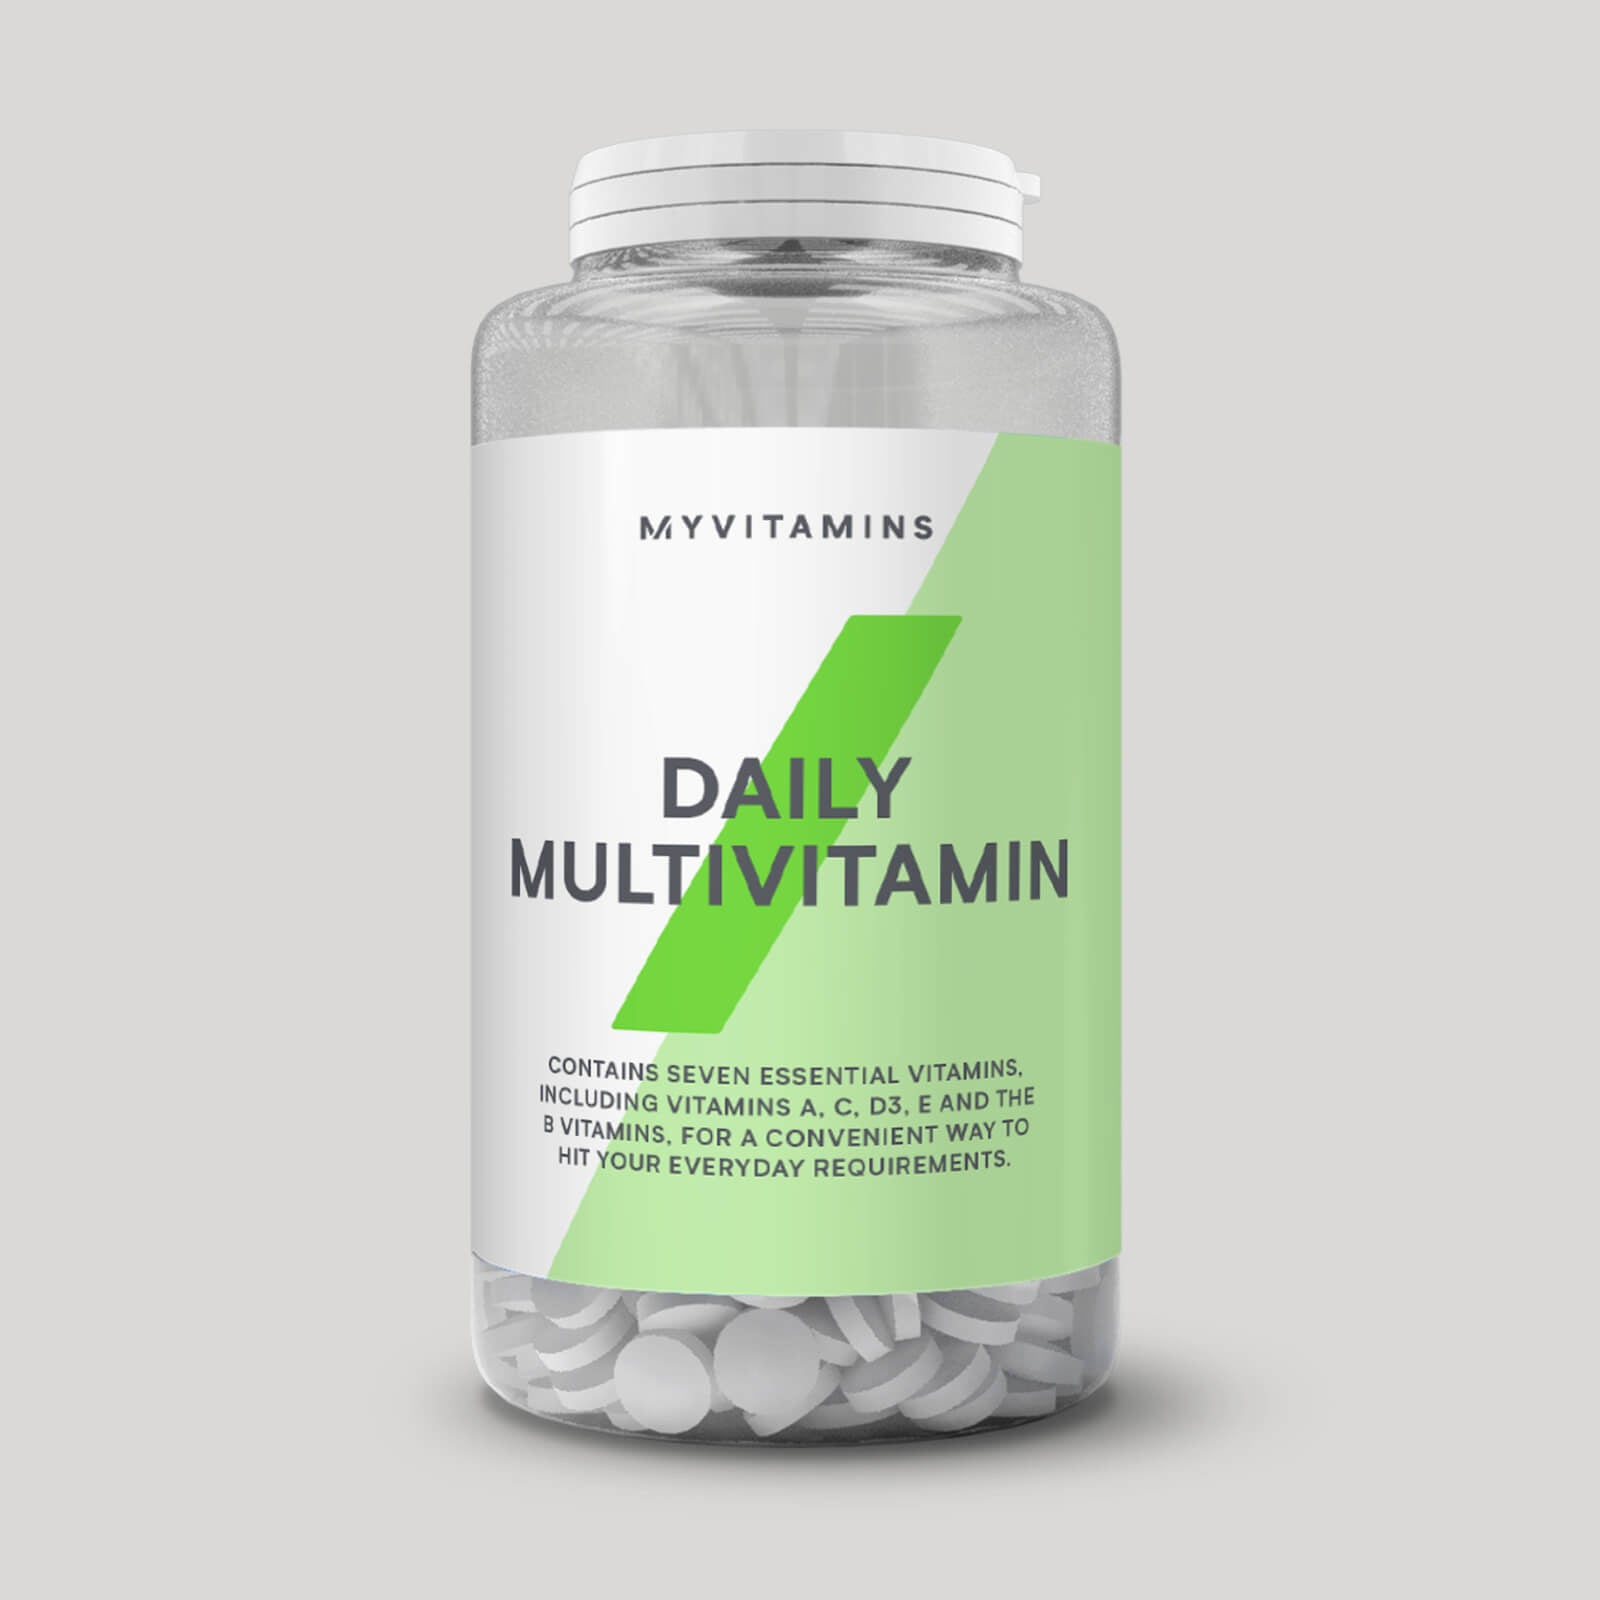 Myprotein Daily Multivitamins